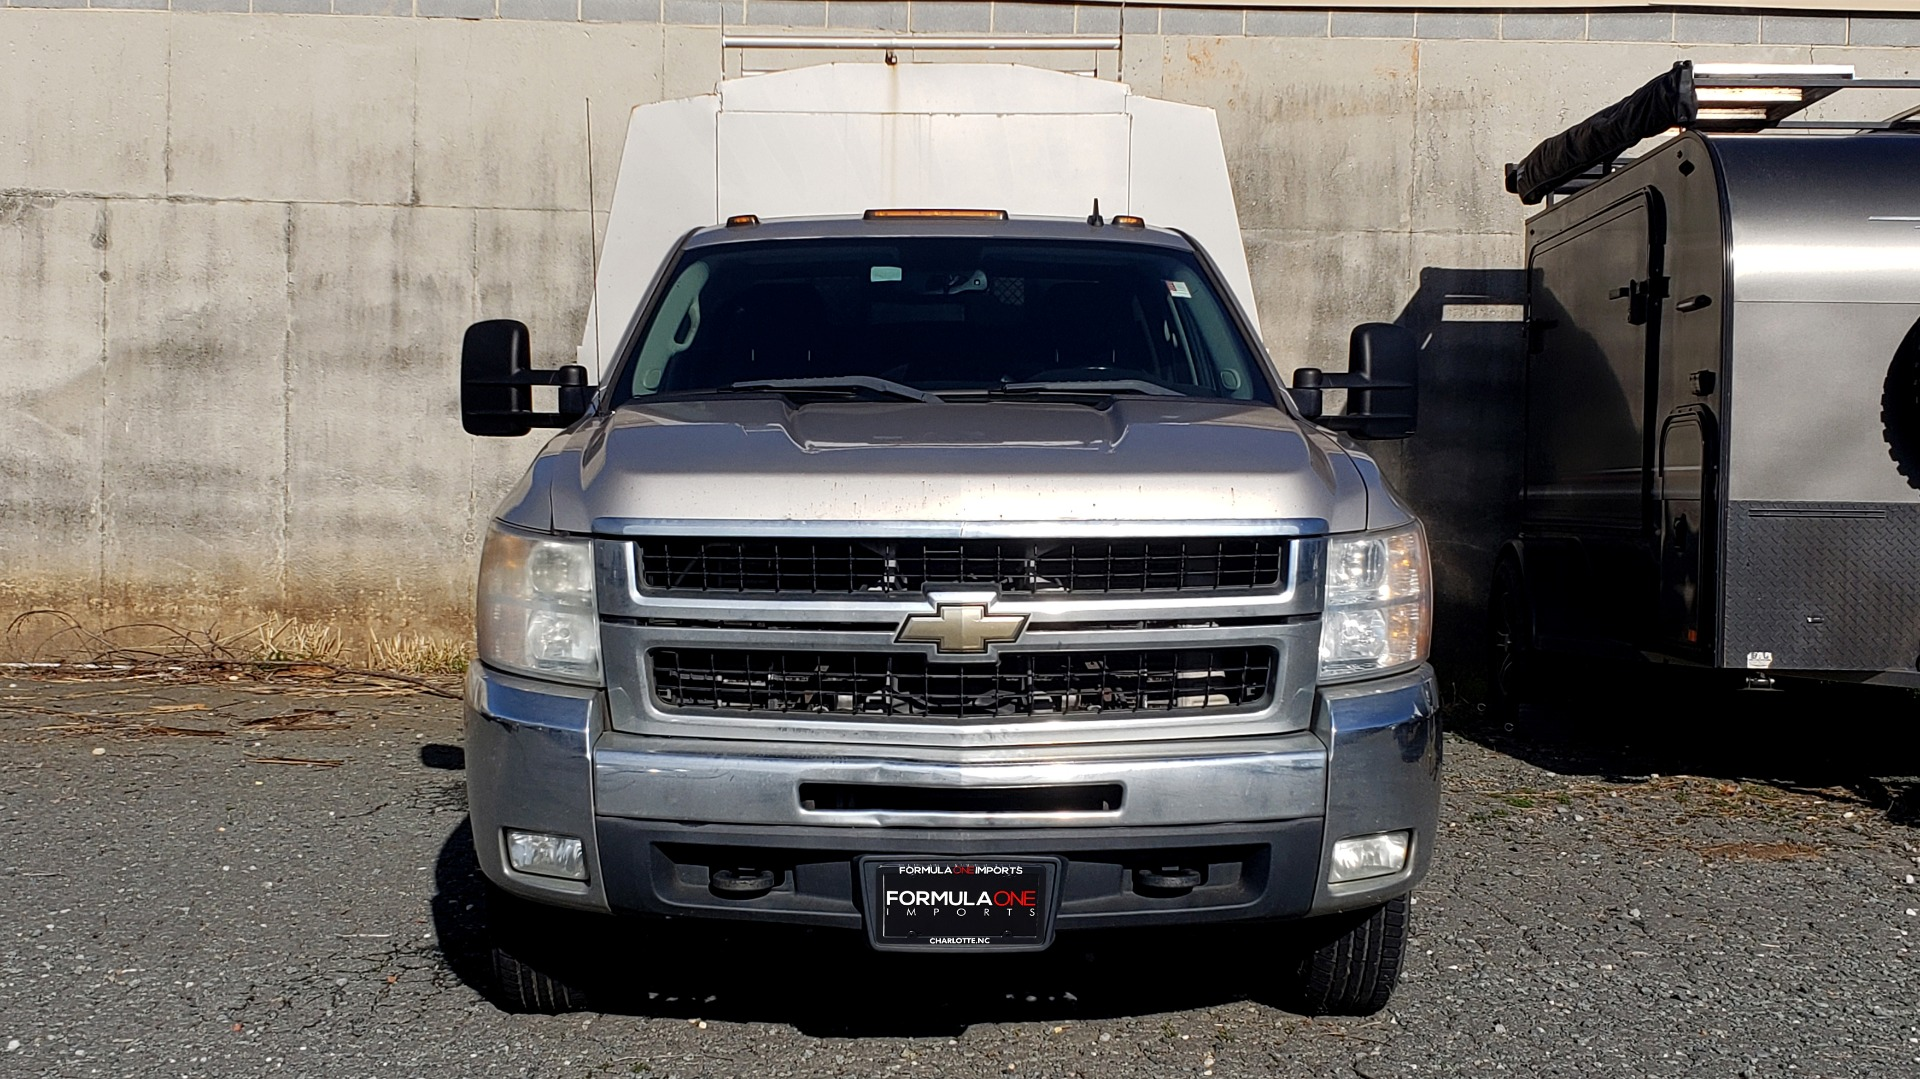 Used 2007 Chevrolet SILVERADO 3500HD DRW LT / 4WD / REG CAB / 6.6L DURAMAX / DOOMSDAY PREPPER for sale $21,595 at Formula Imports in Charlotte NC 28227 3